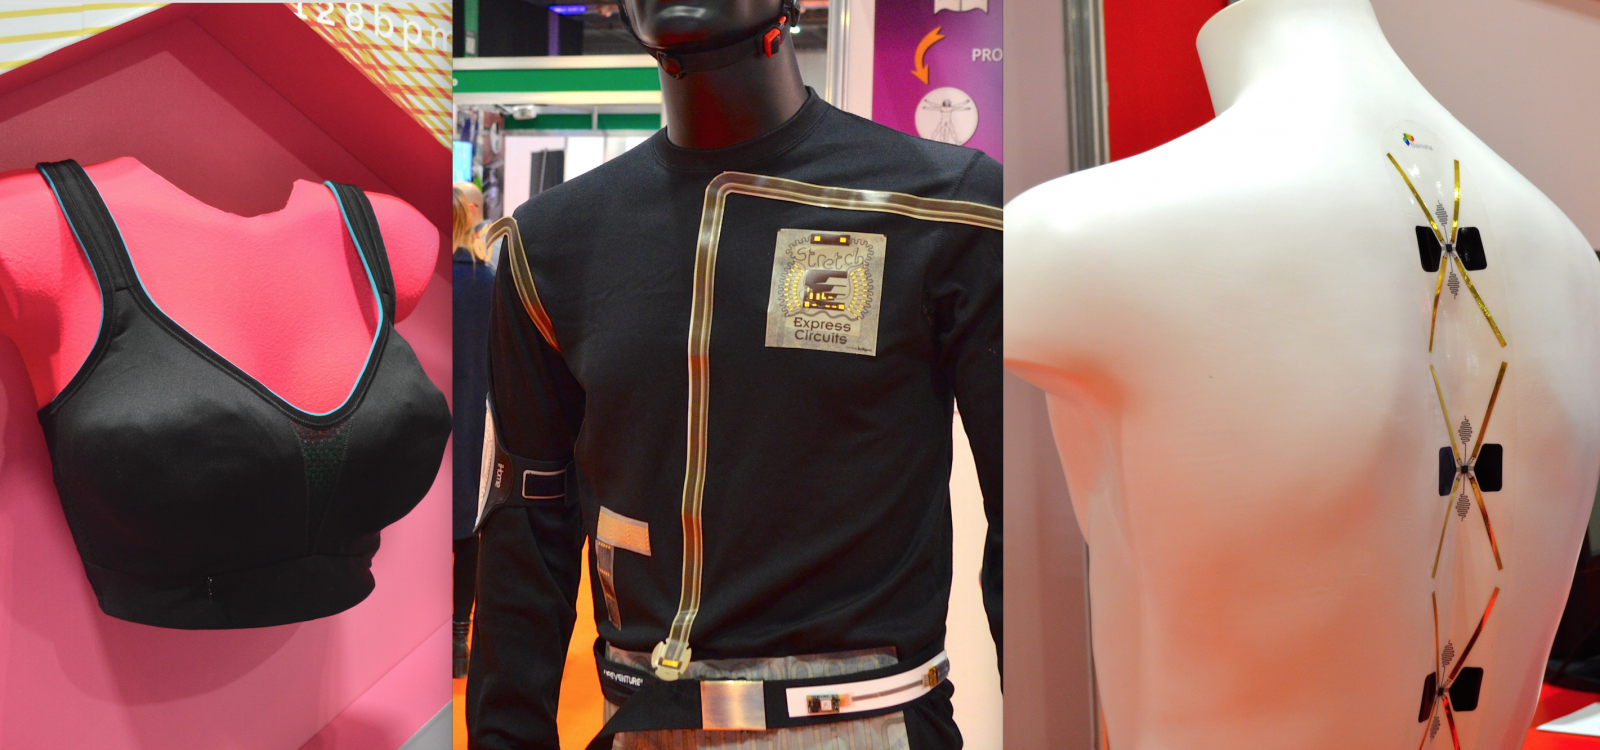 Wearables 2 0 Sensors Woven Into Clothing Lead Medical